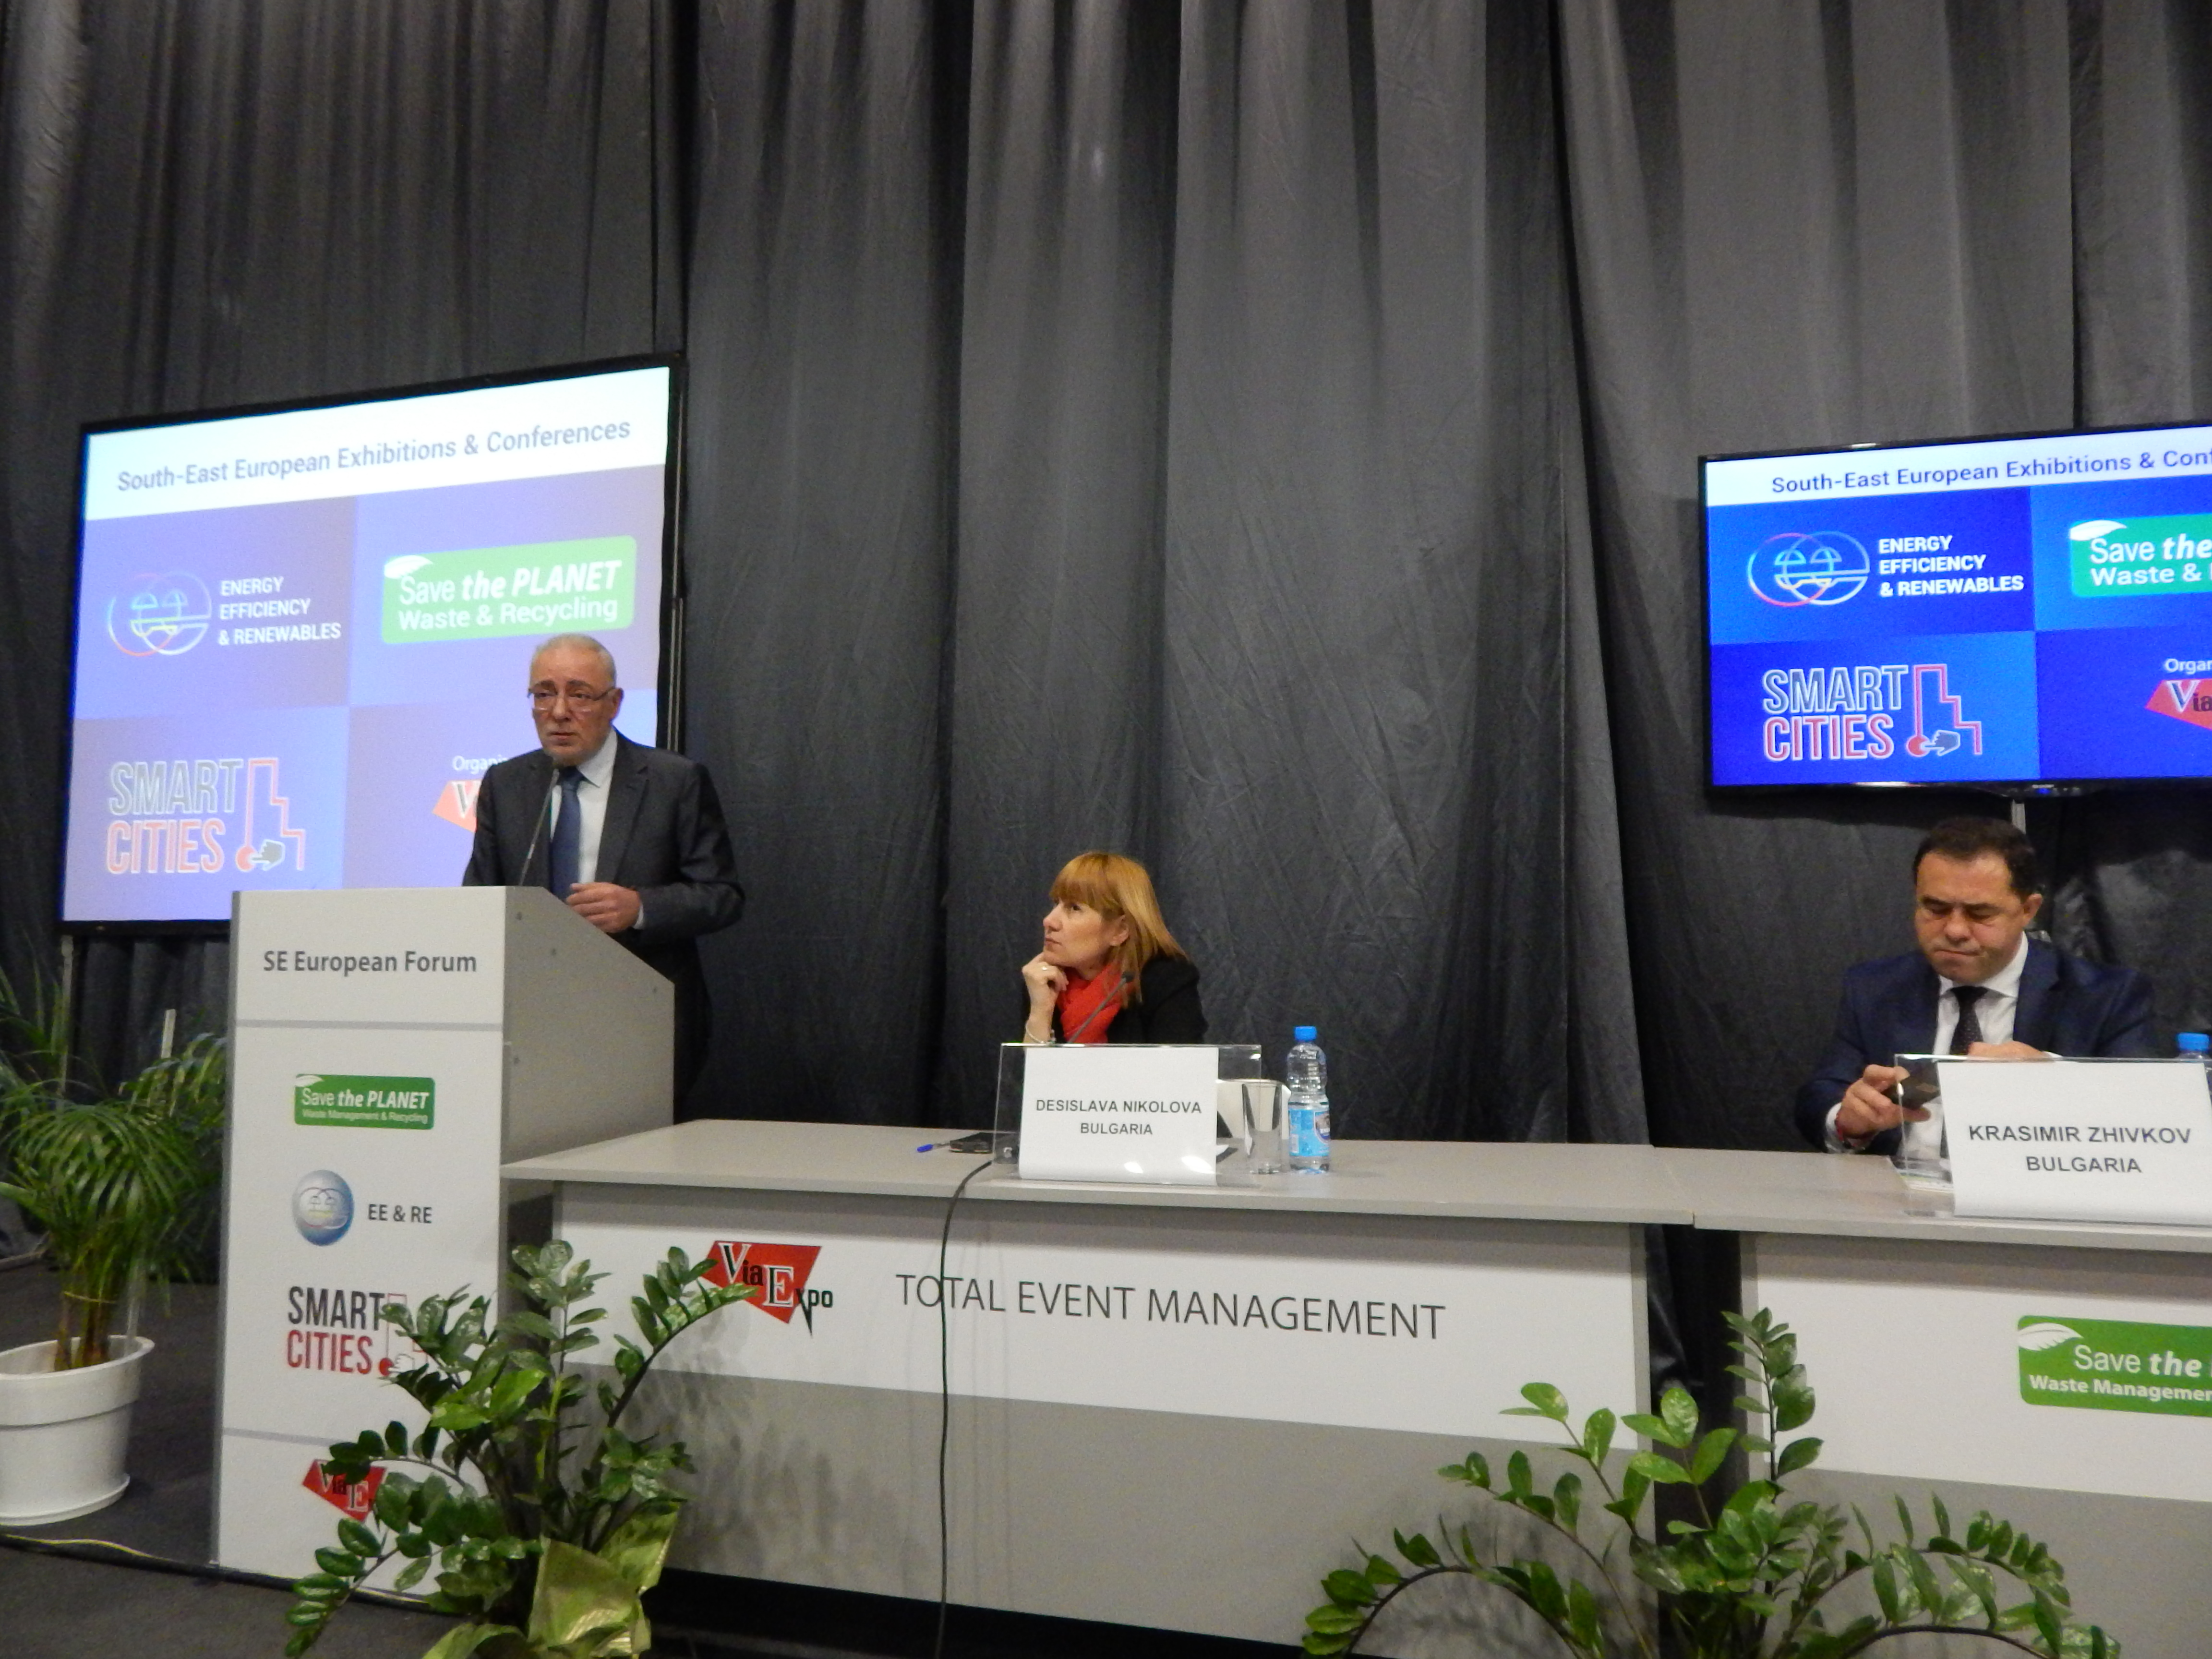 BIA's President opened the series of international events on energy, waste management and smart cities